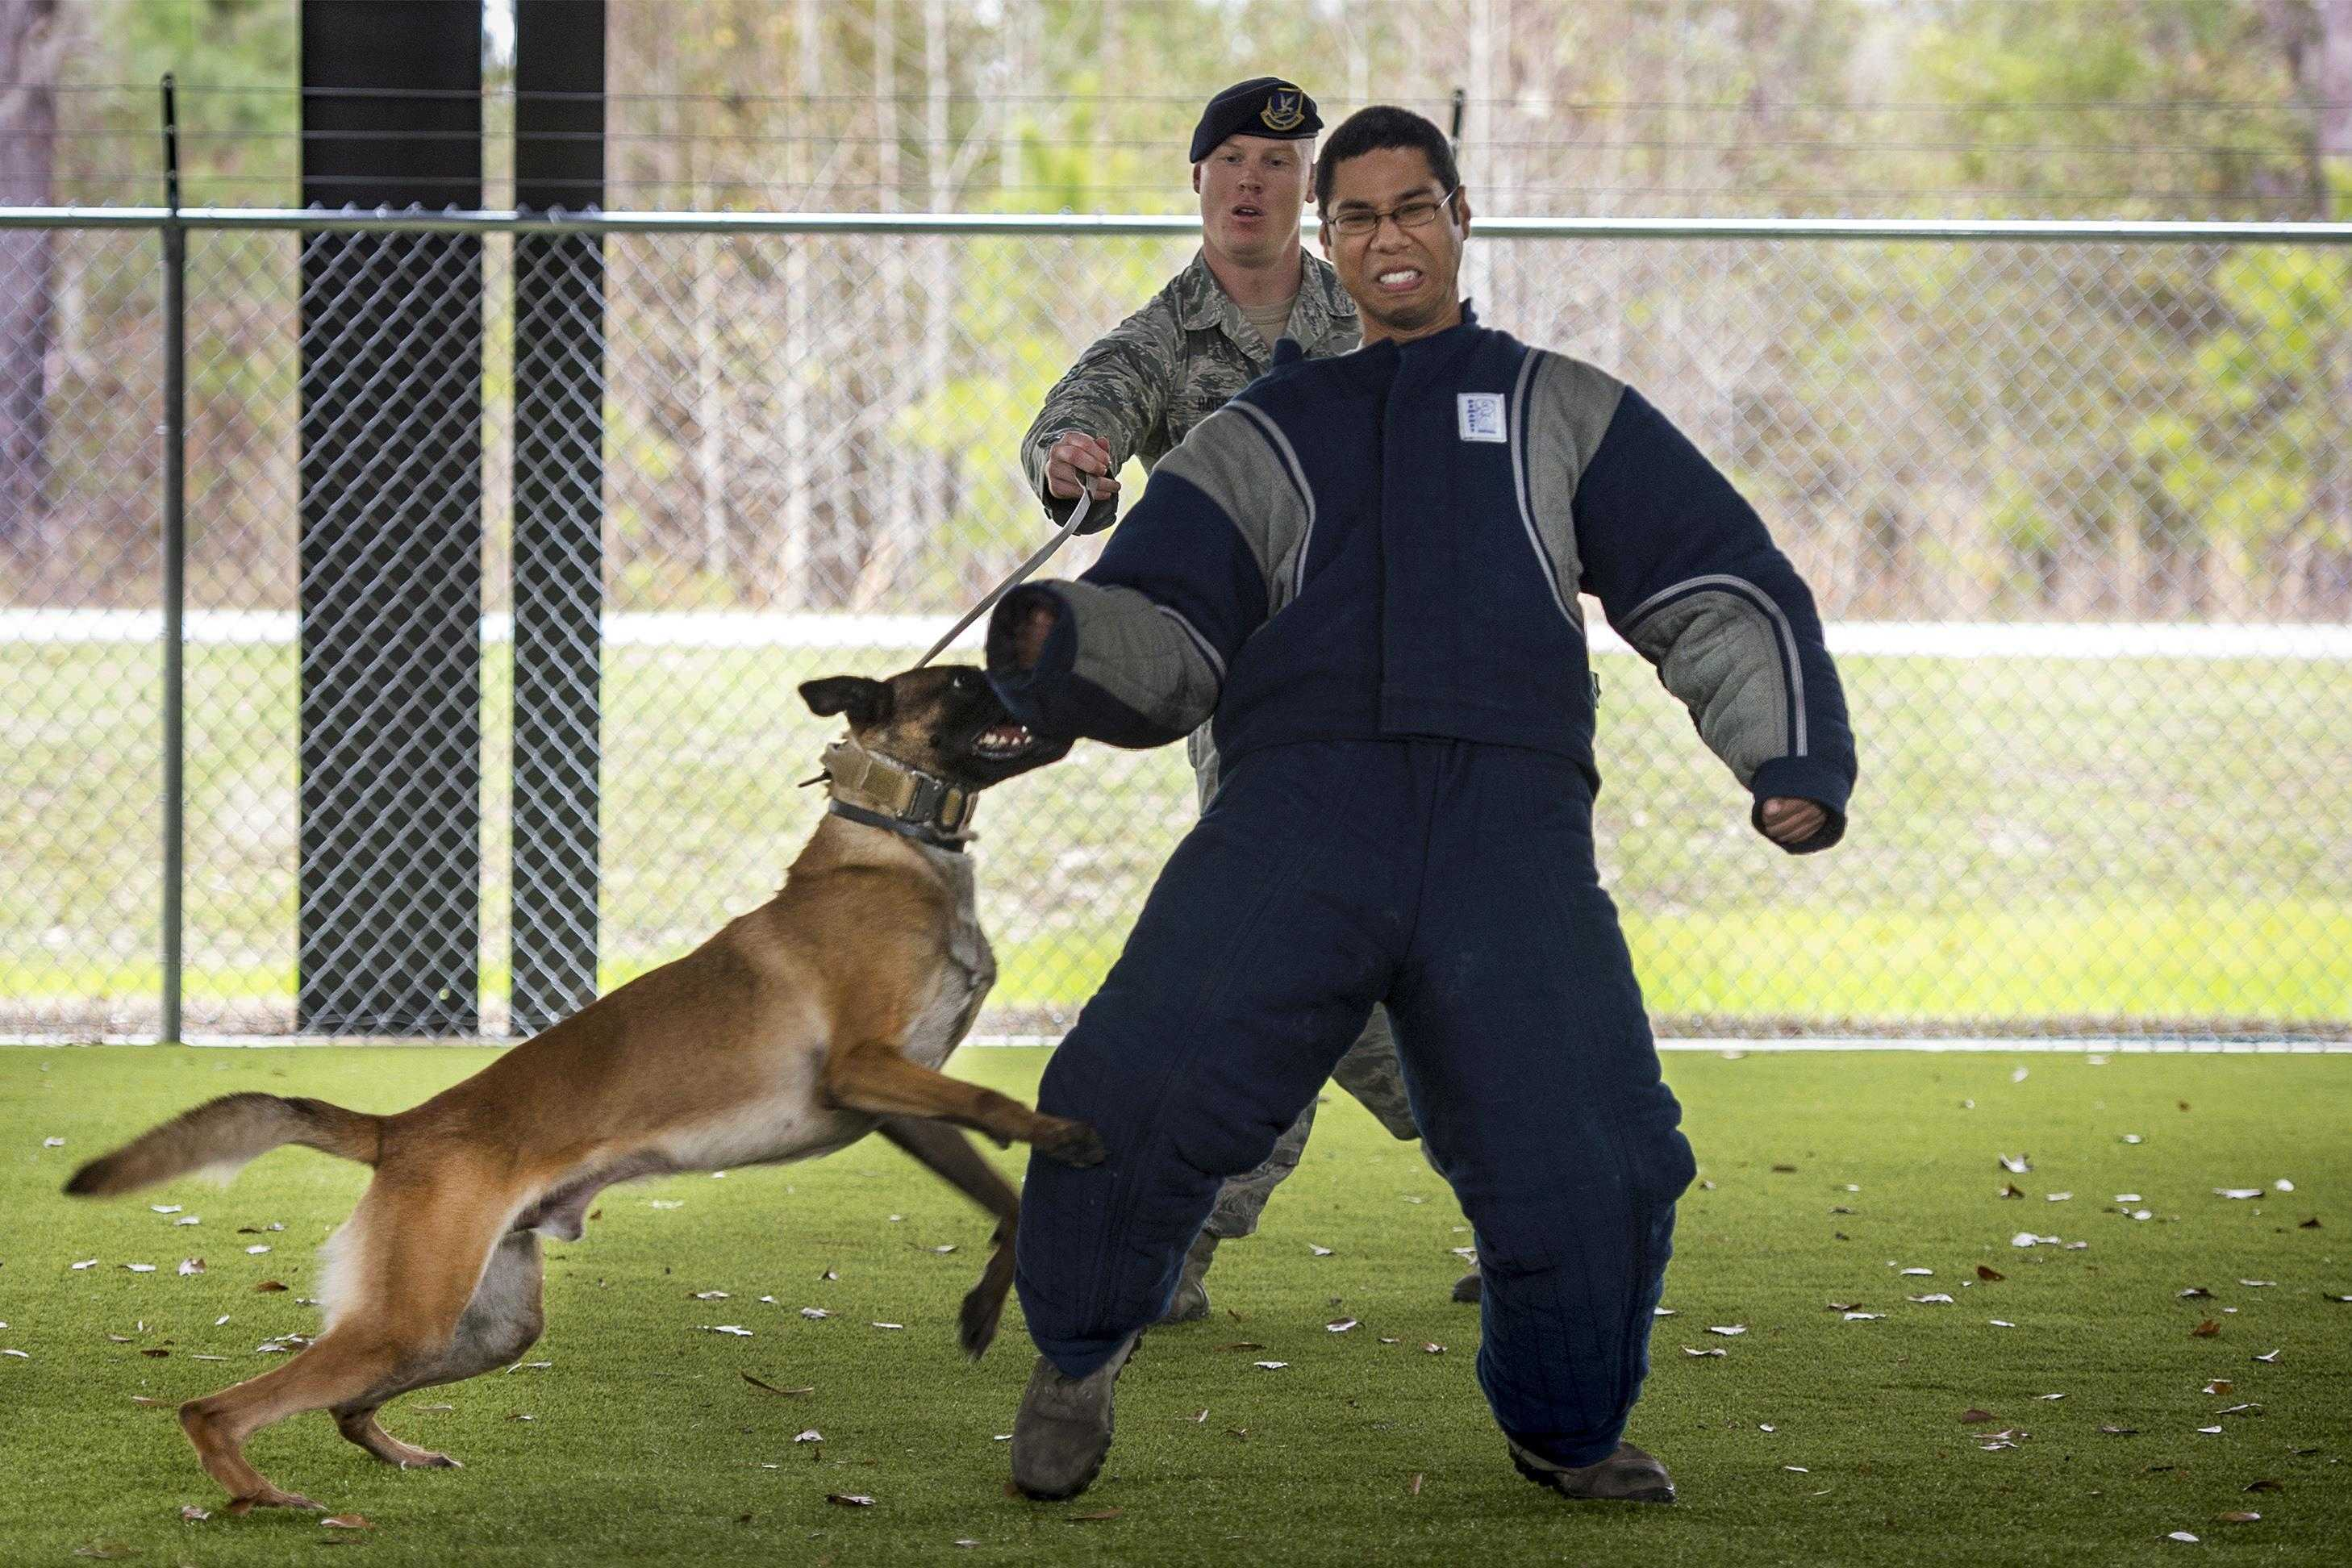 8 photos that show how a military working dog takes down bad guys